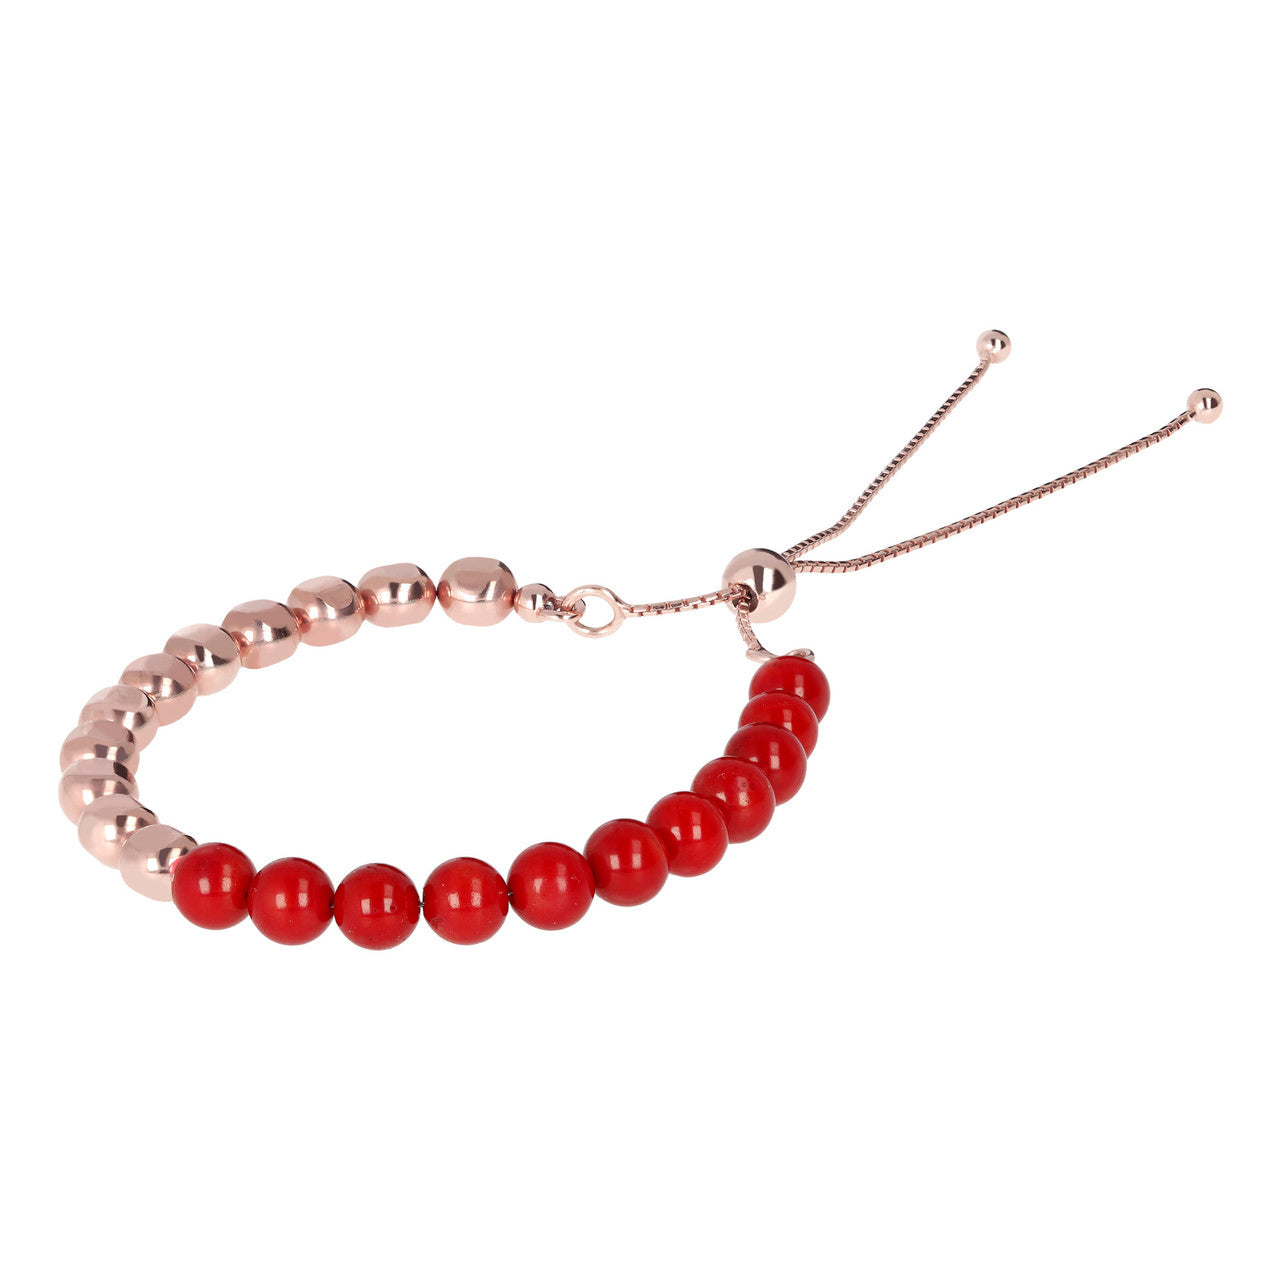 Beaded Friendship Bracelet with Gemstones RED CORAL